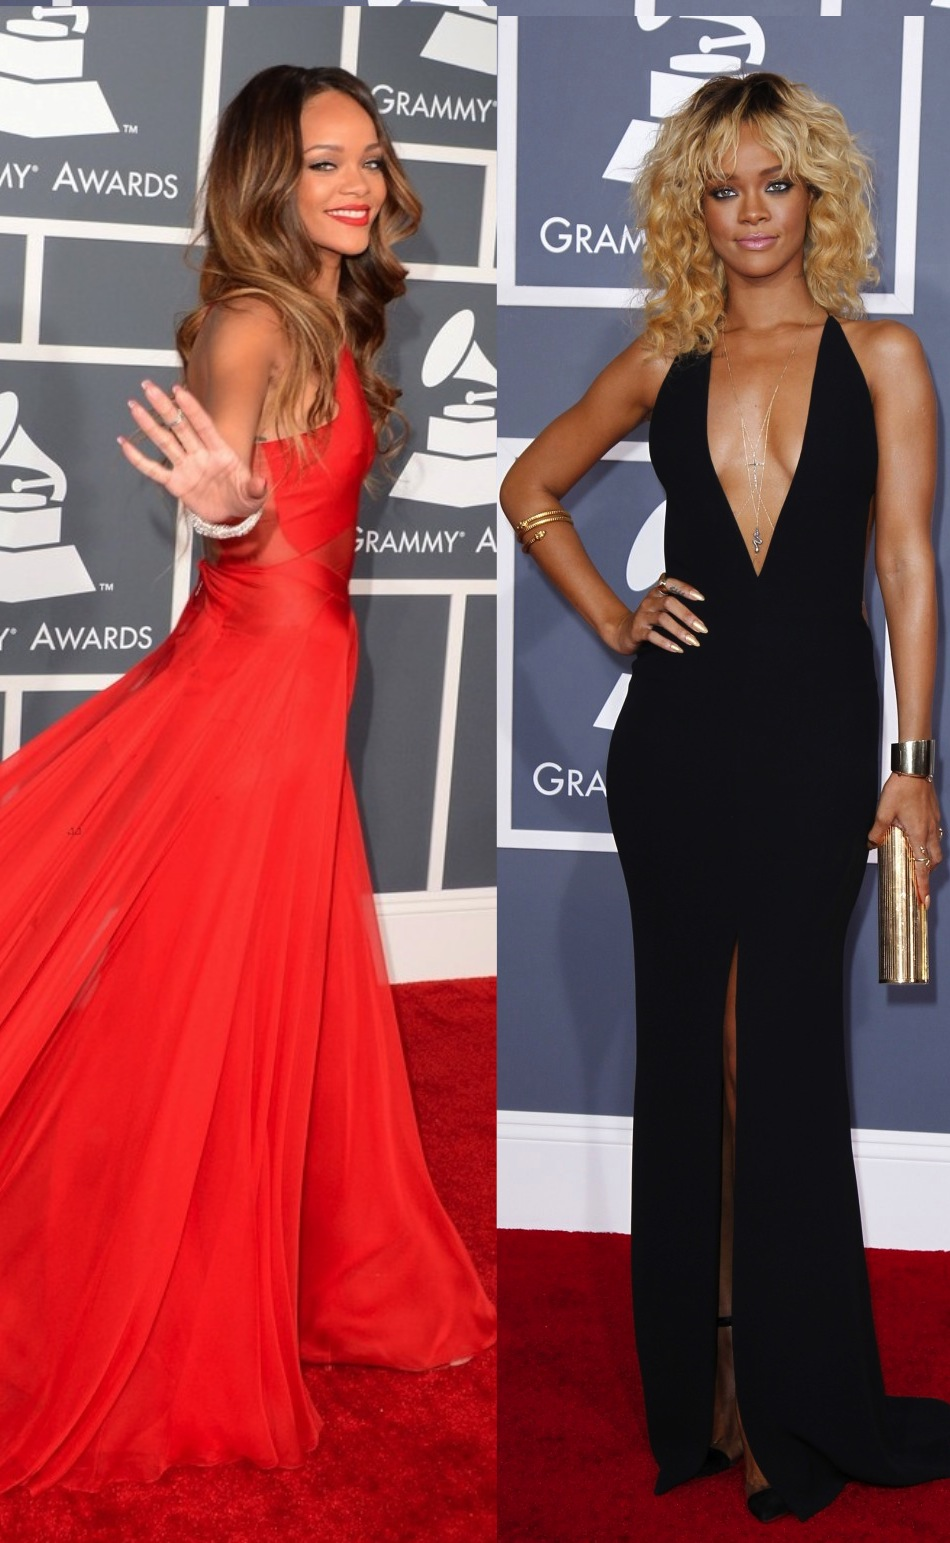 Rihanna Then Now #Grammys dress